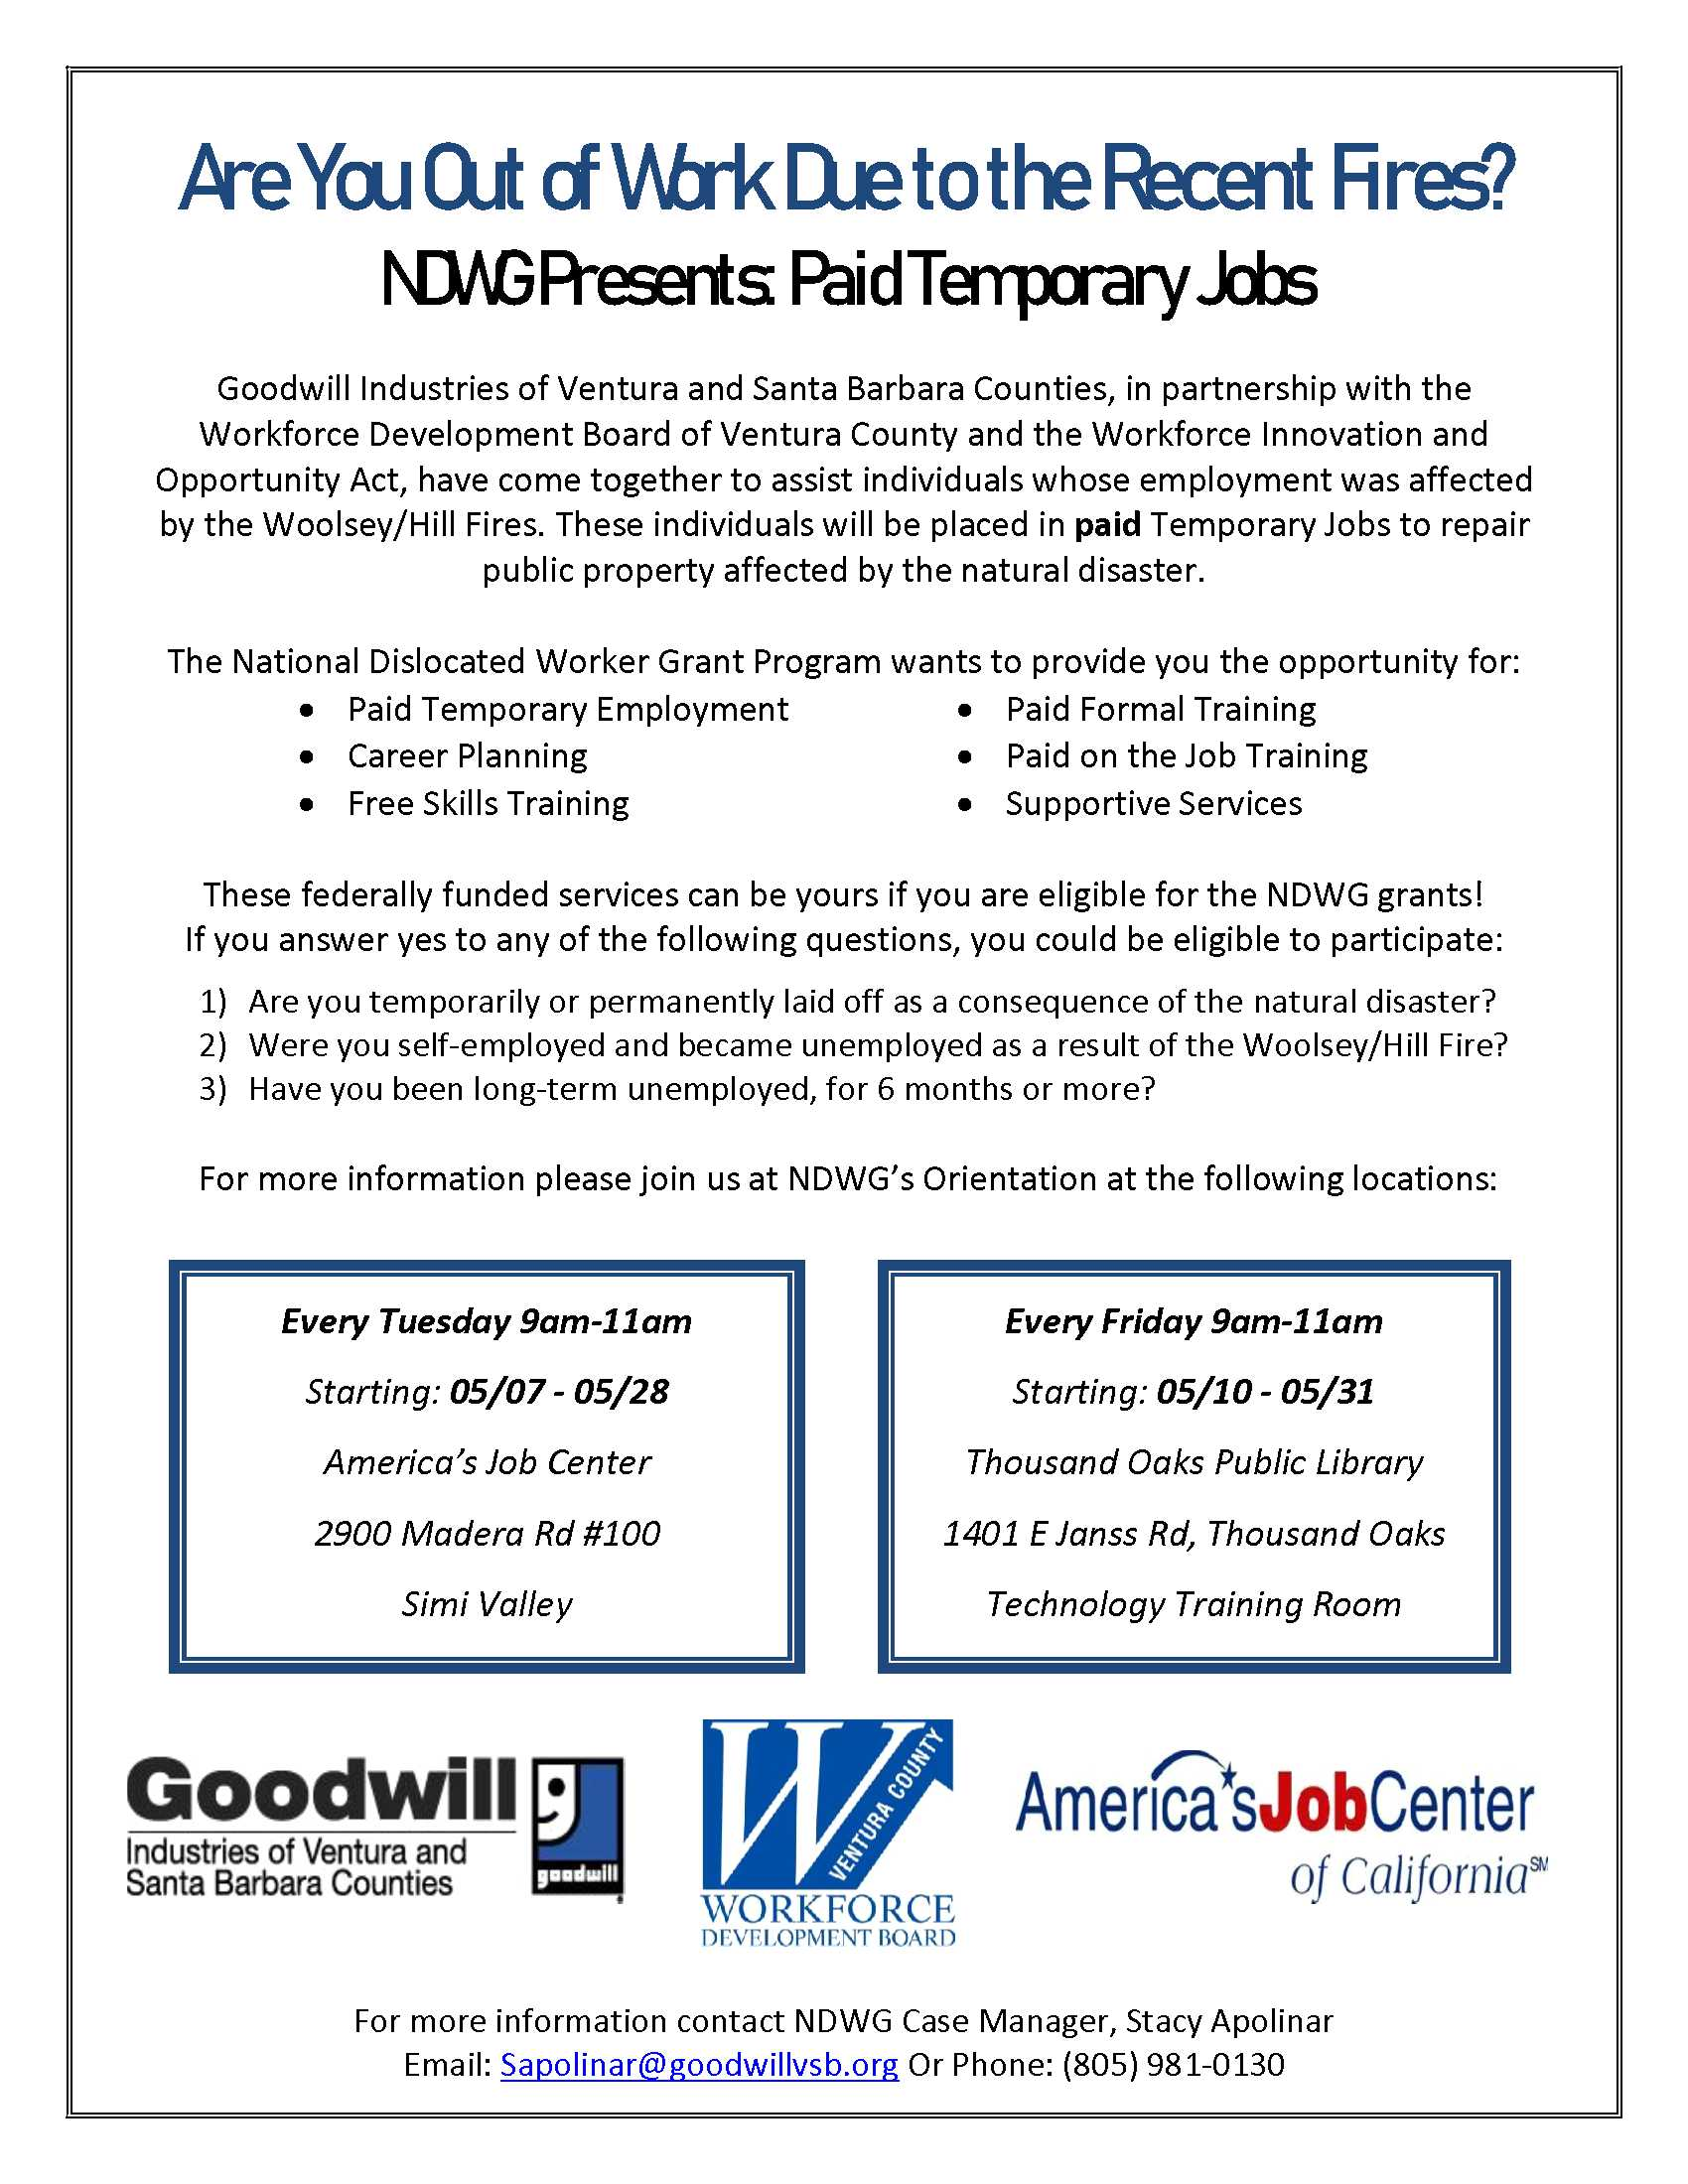 Goodwill NDWG Paid Temporary Jobs for Fire Victims